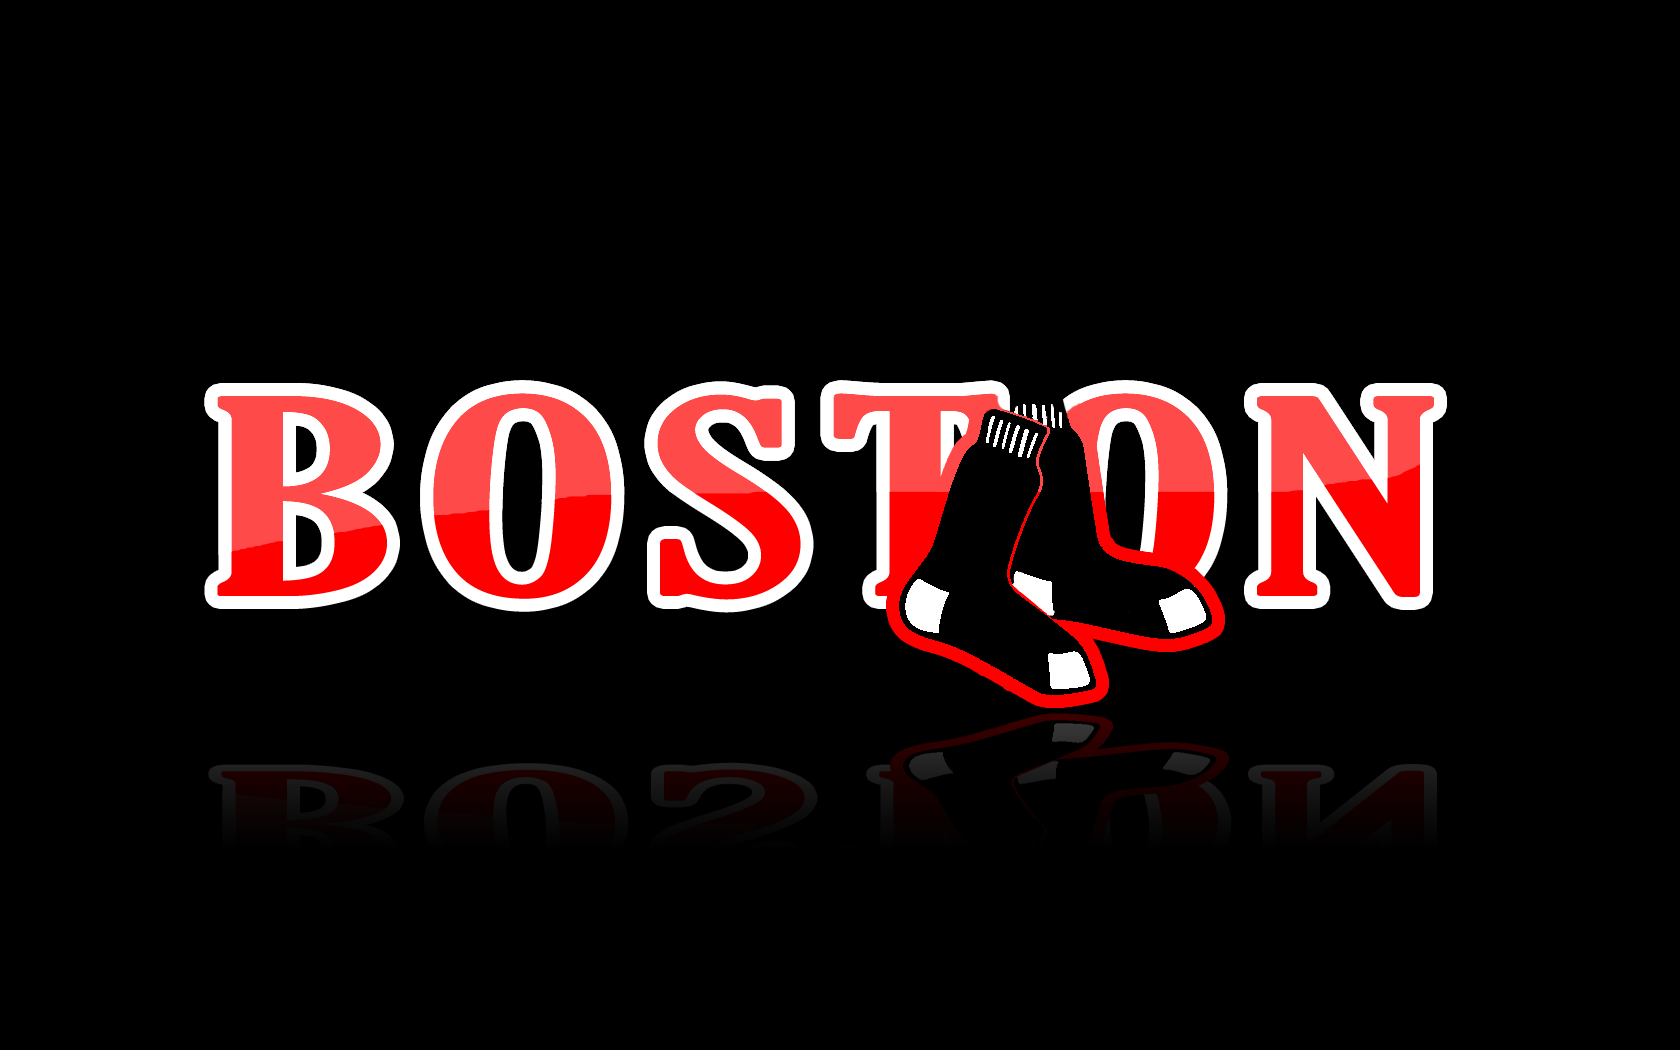 1680x1050 - Boston Red Sox Wallpaper Screensavers 4